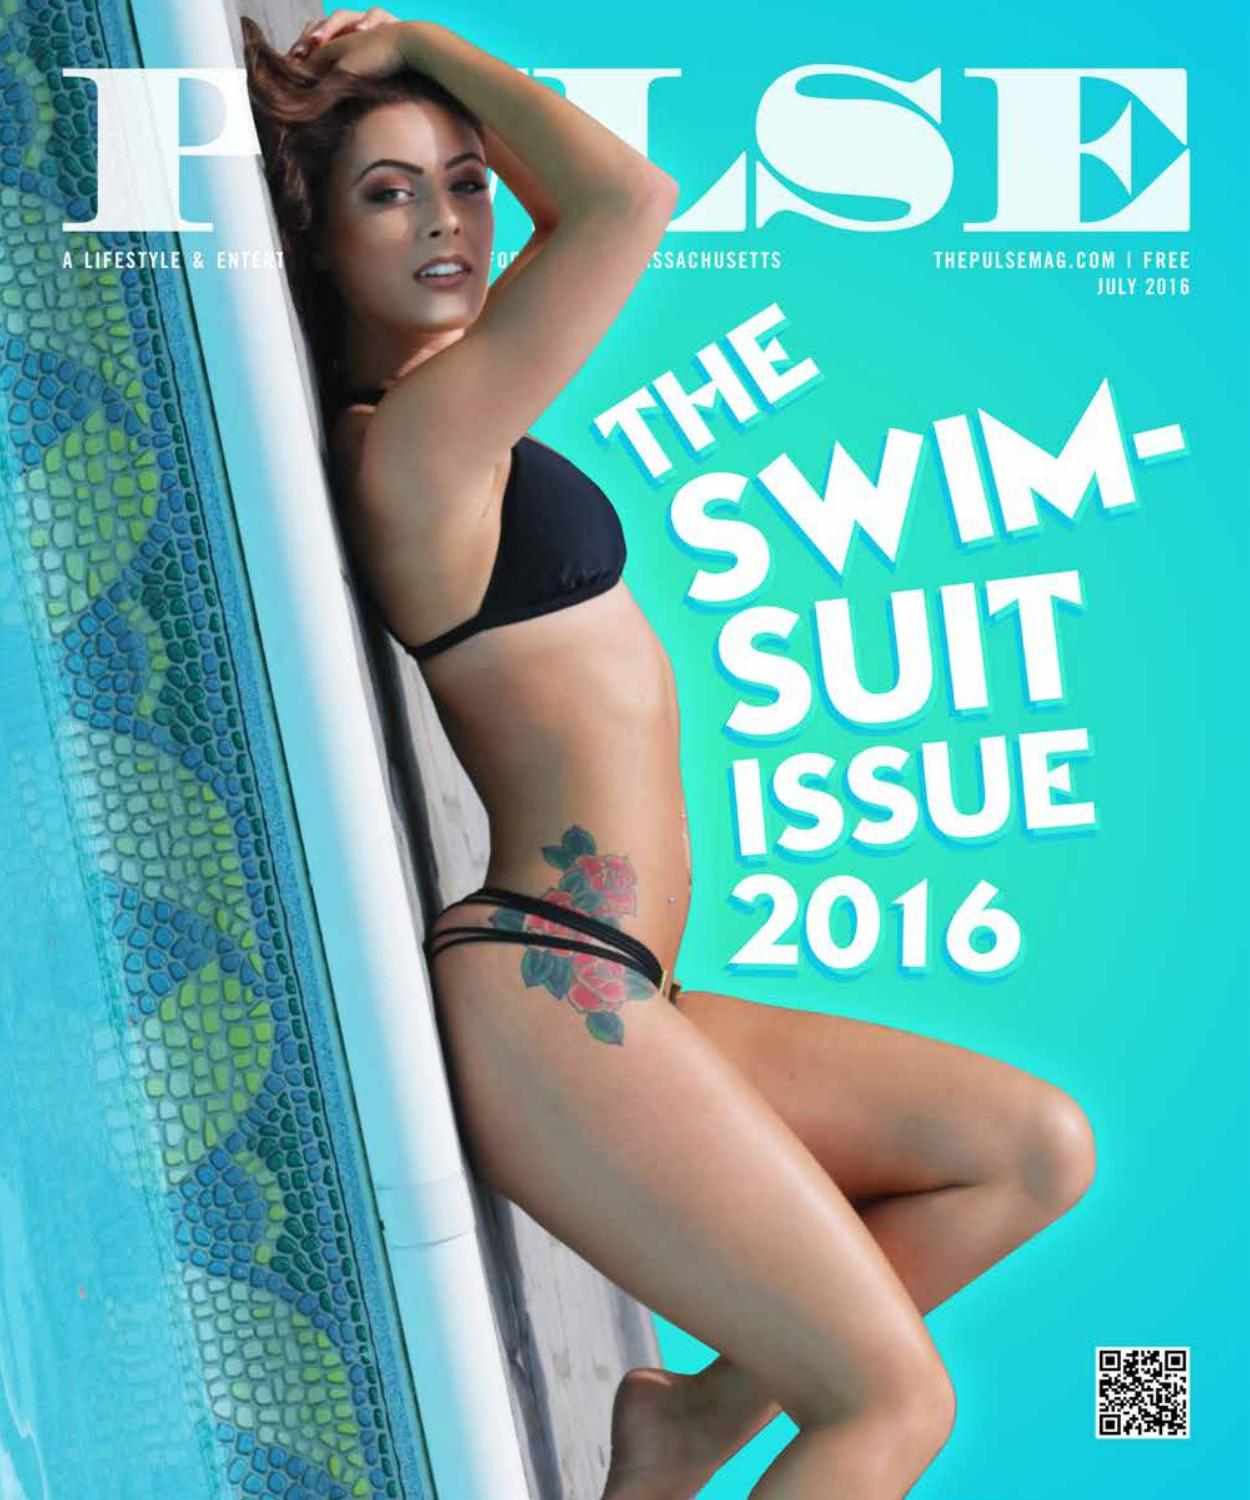 Cash Pool Bamberg The Pulse Magazine July 2016 By Pulse Magazine Issuu